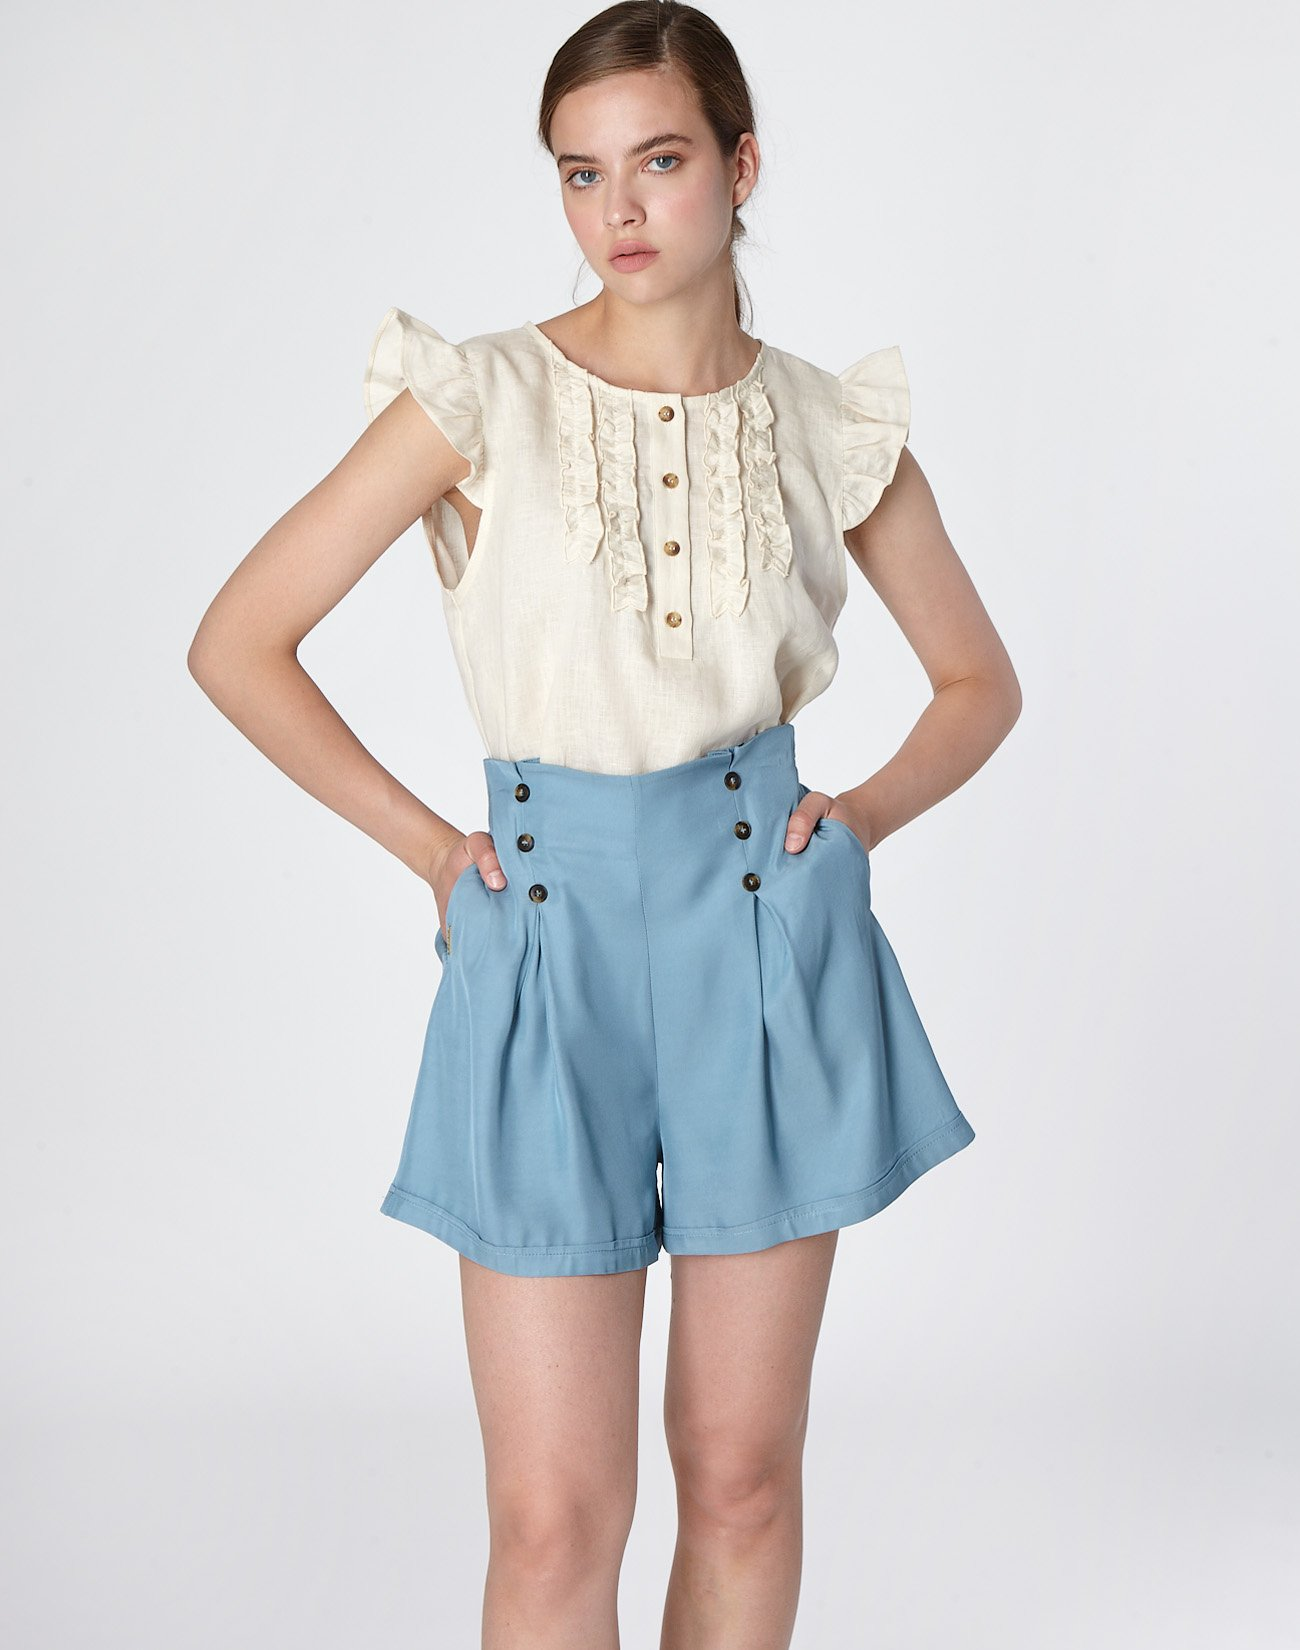 Buttoned shorts